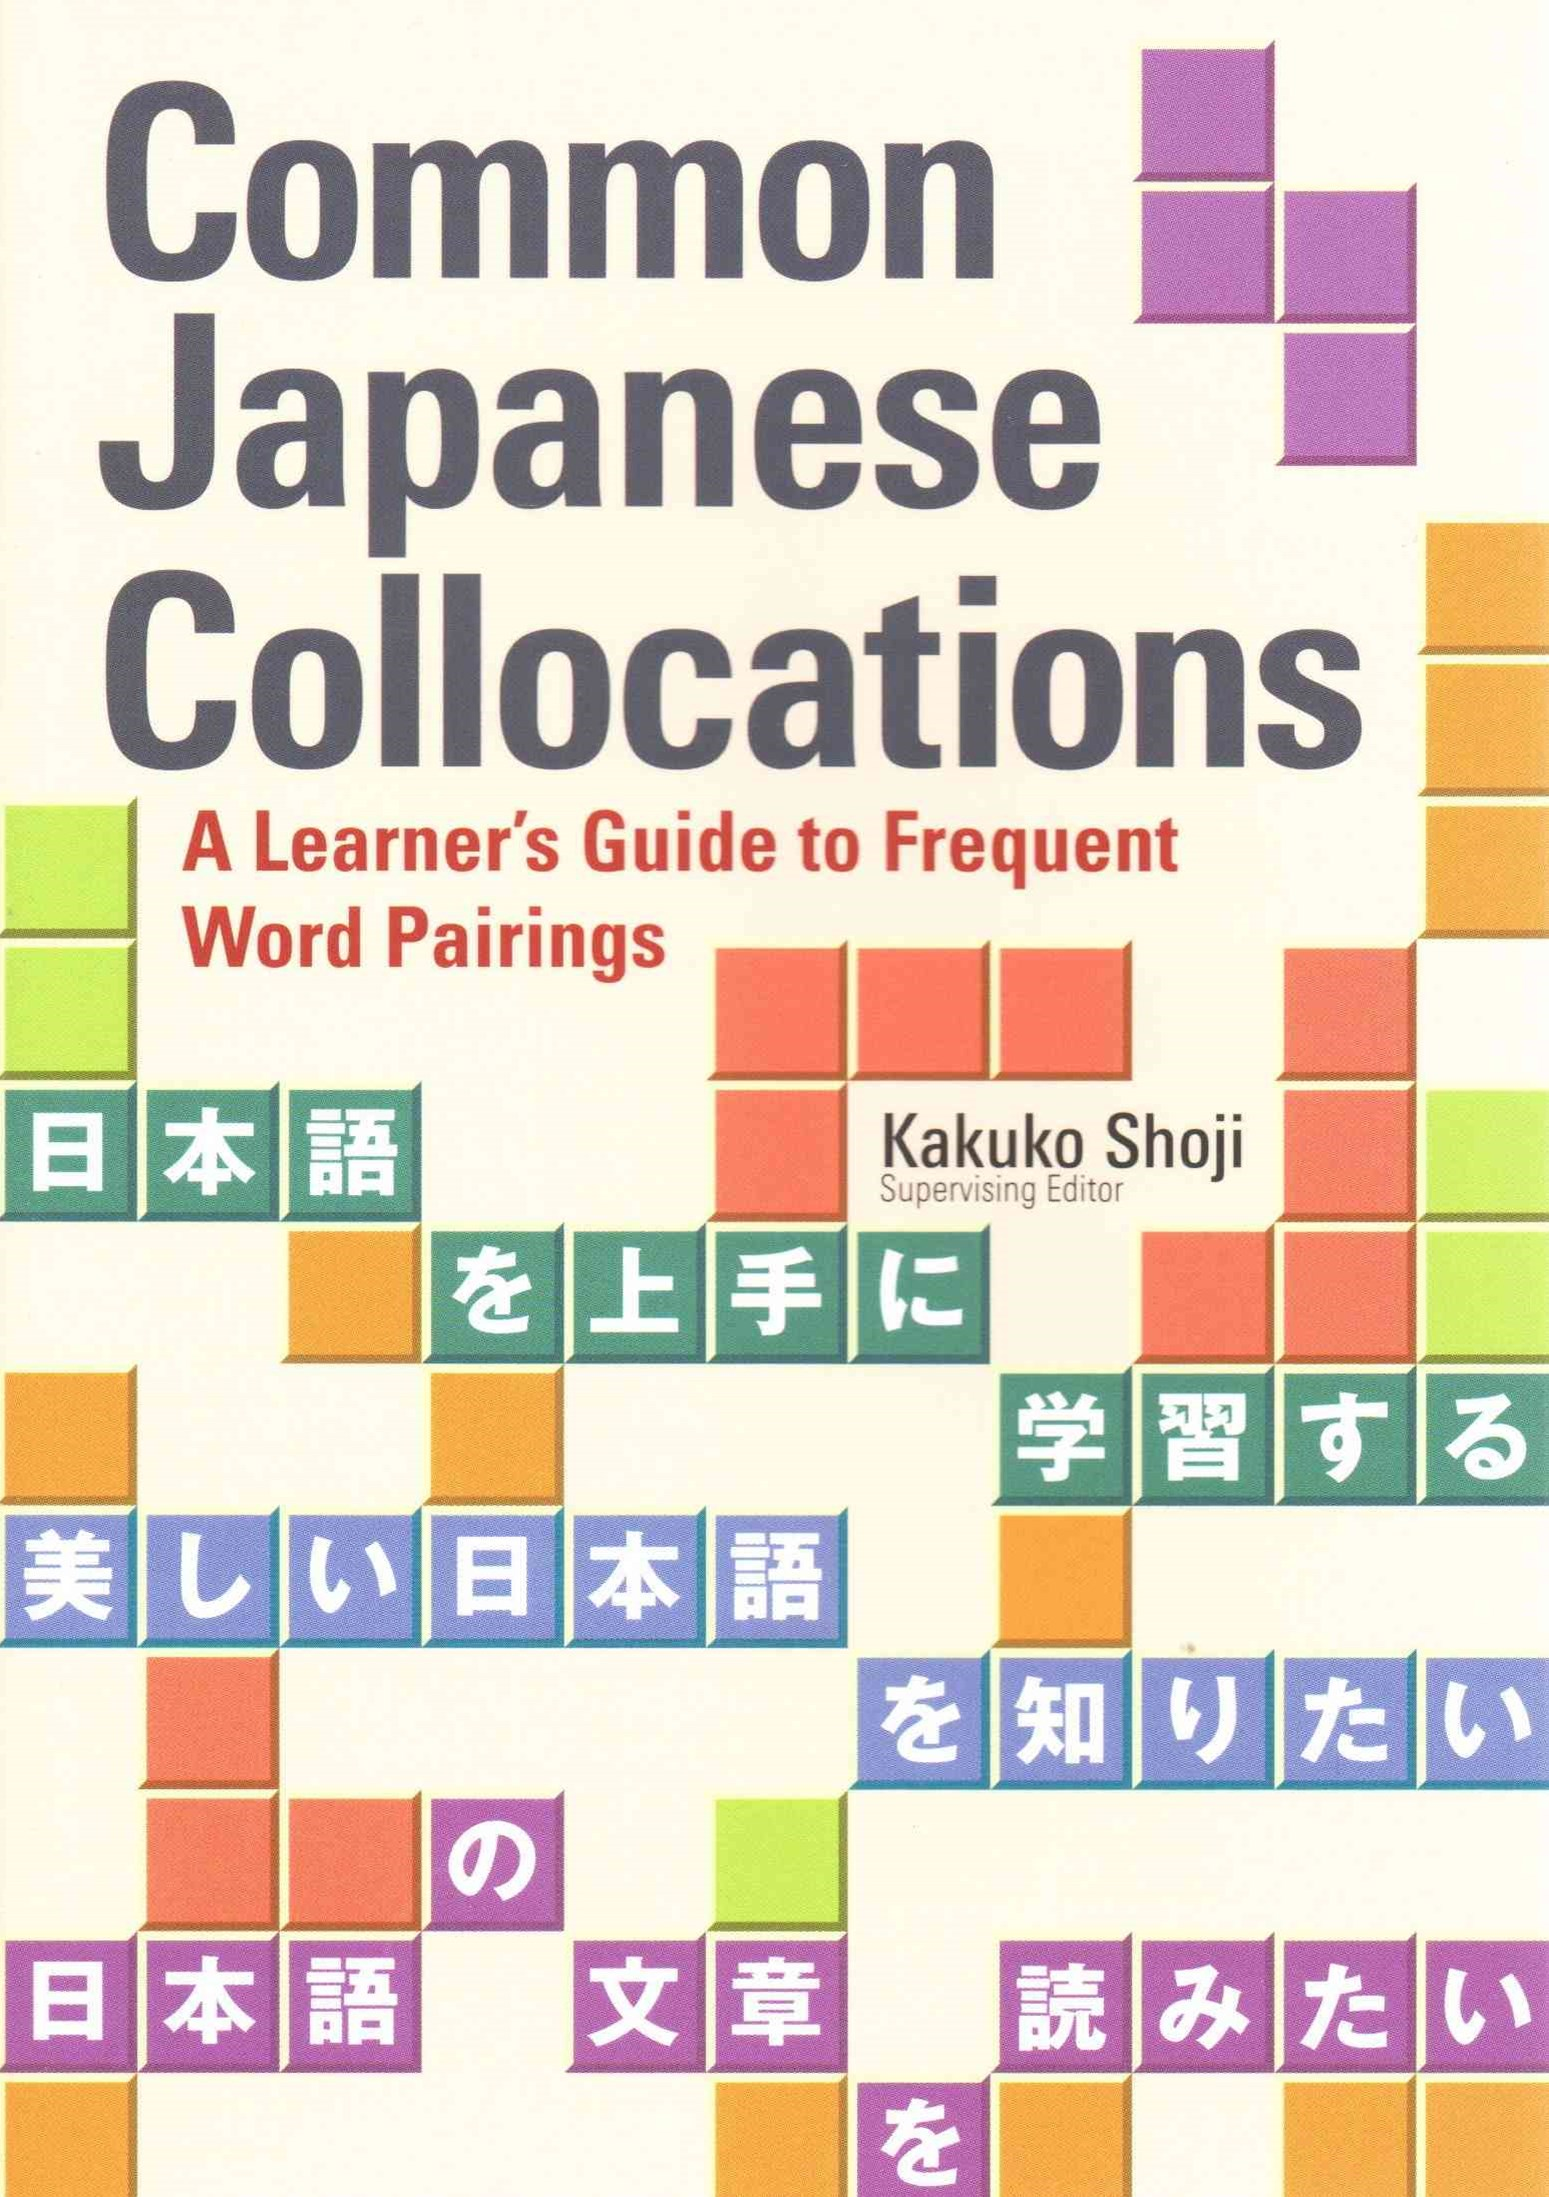 Common Japanese Collocations